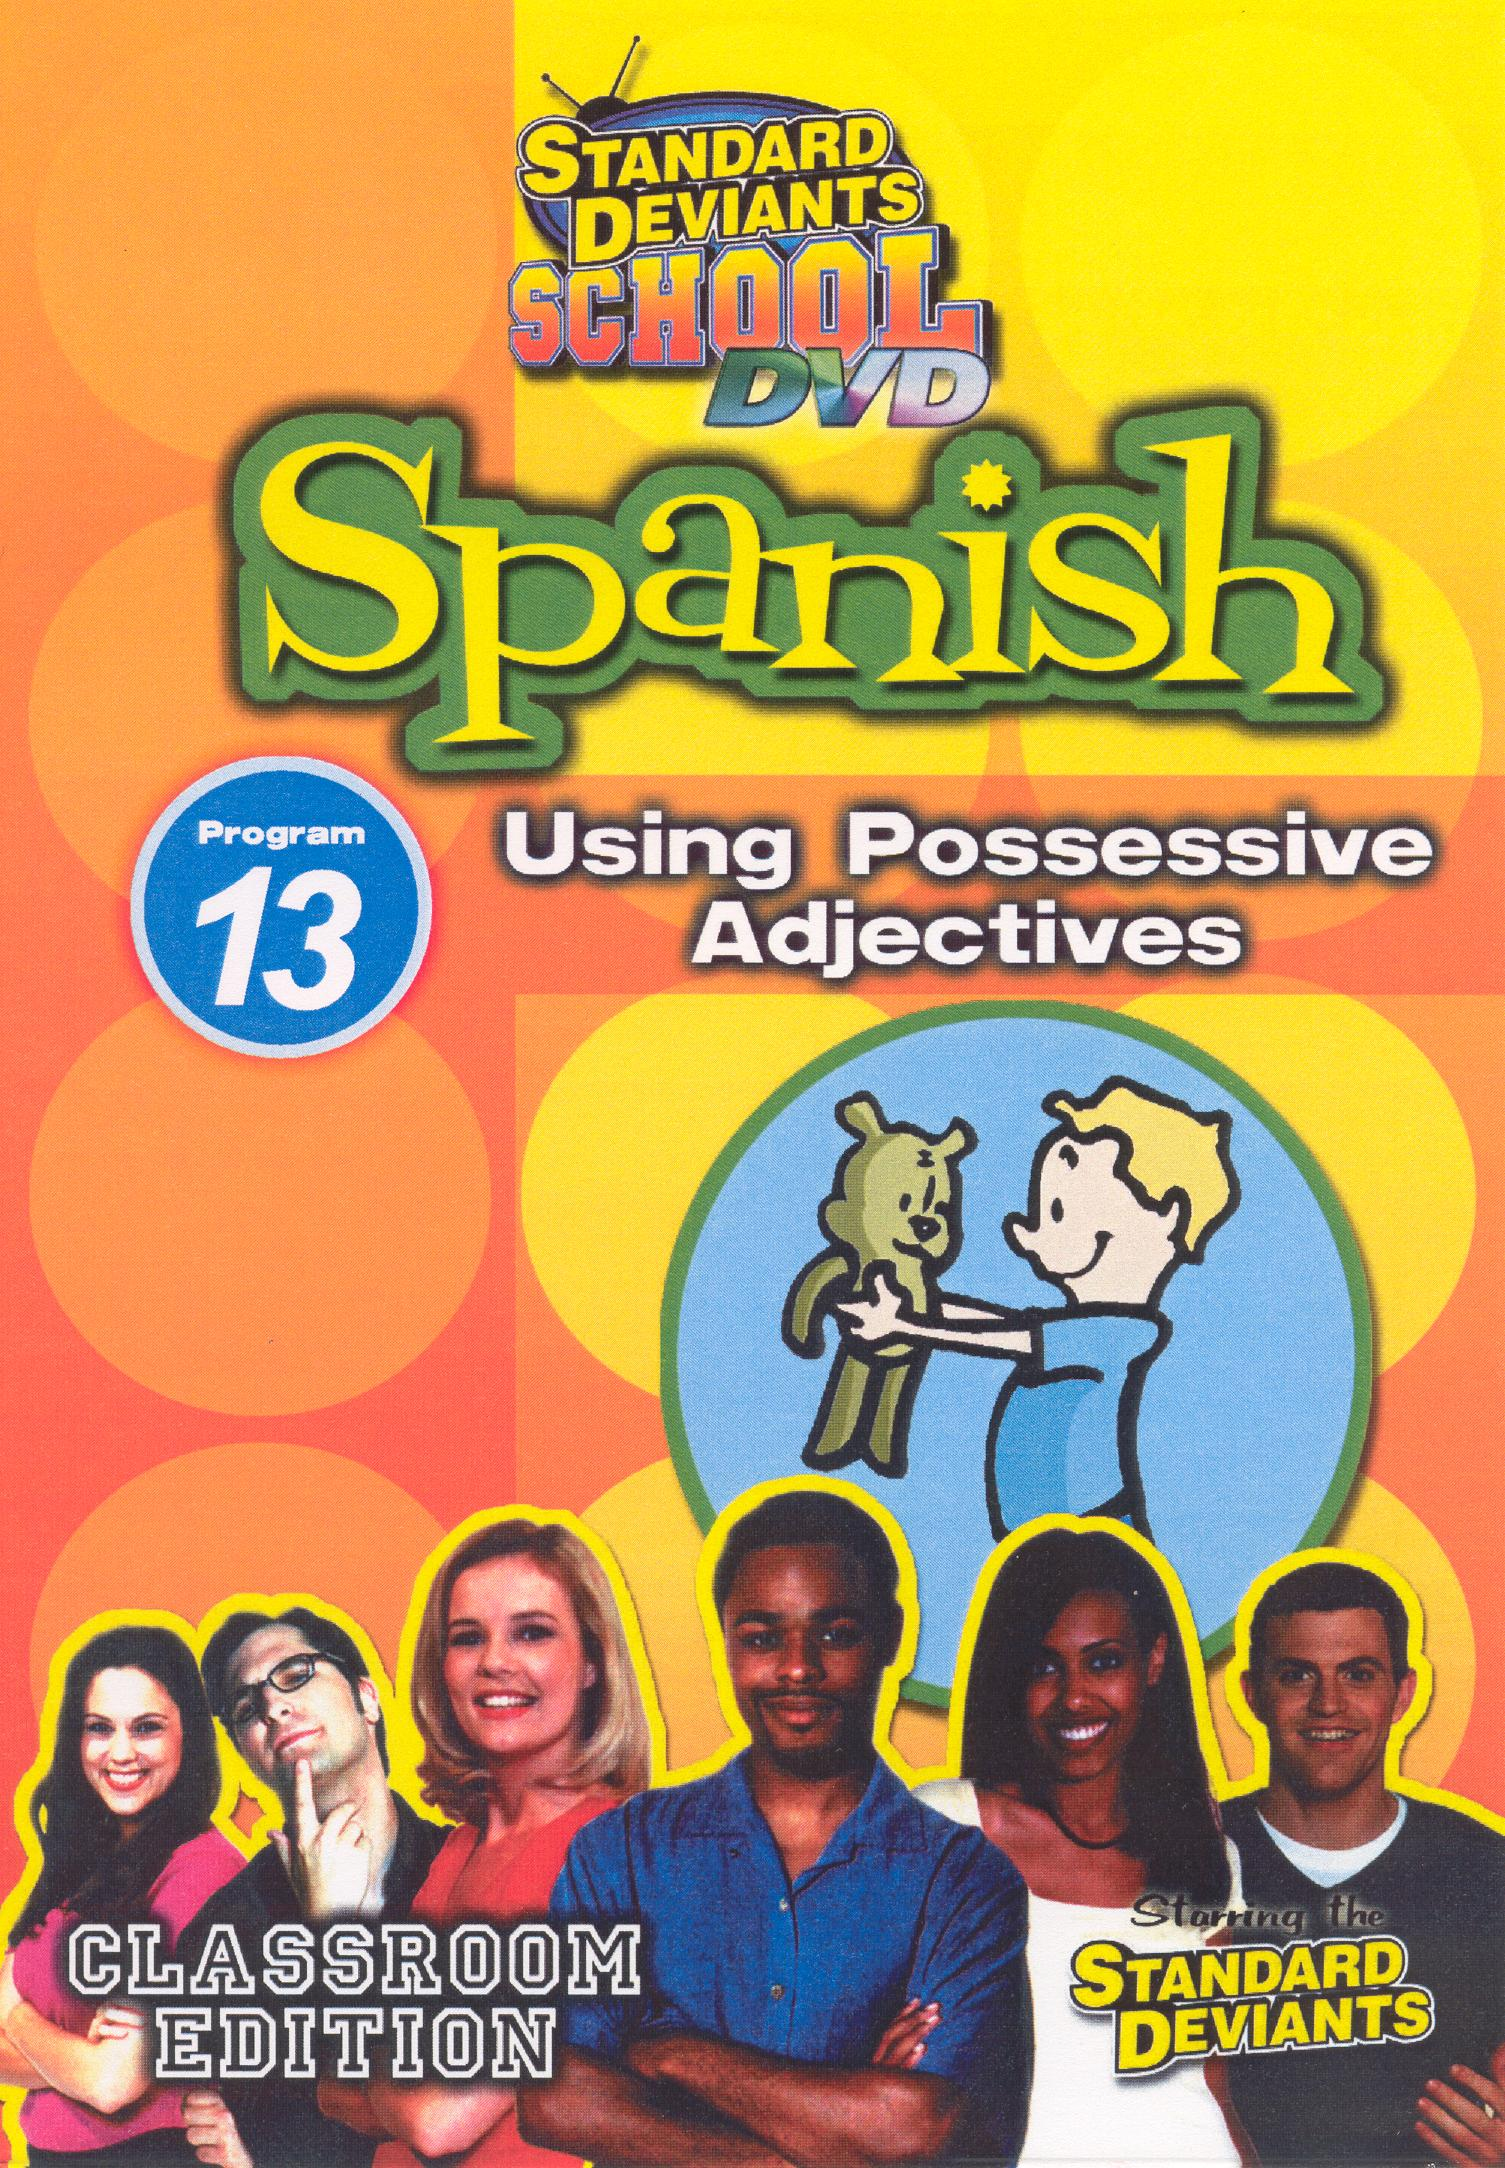 Standard Deviants School: Spanish, Program 13